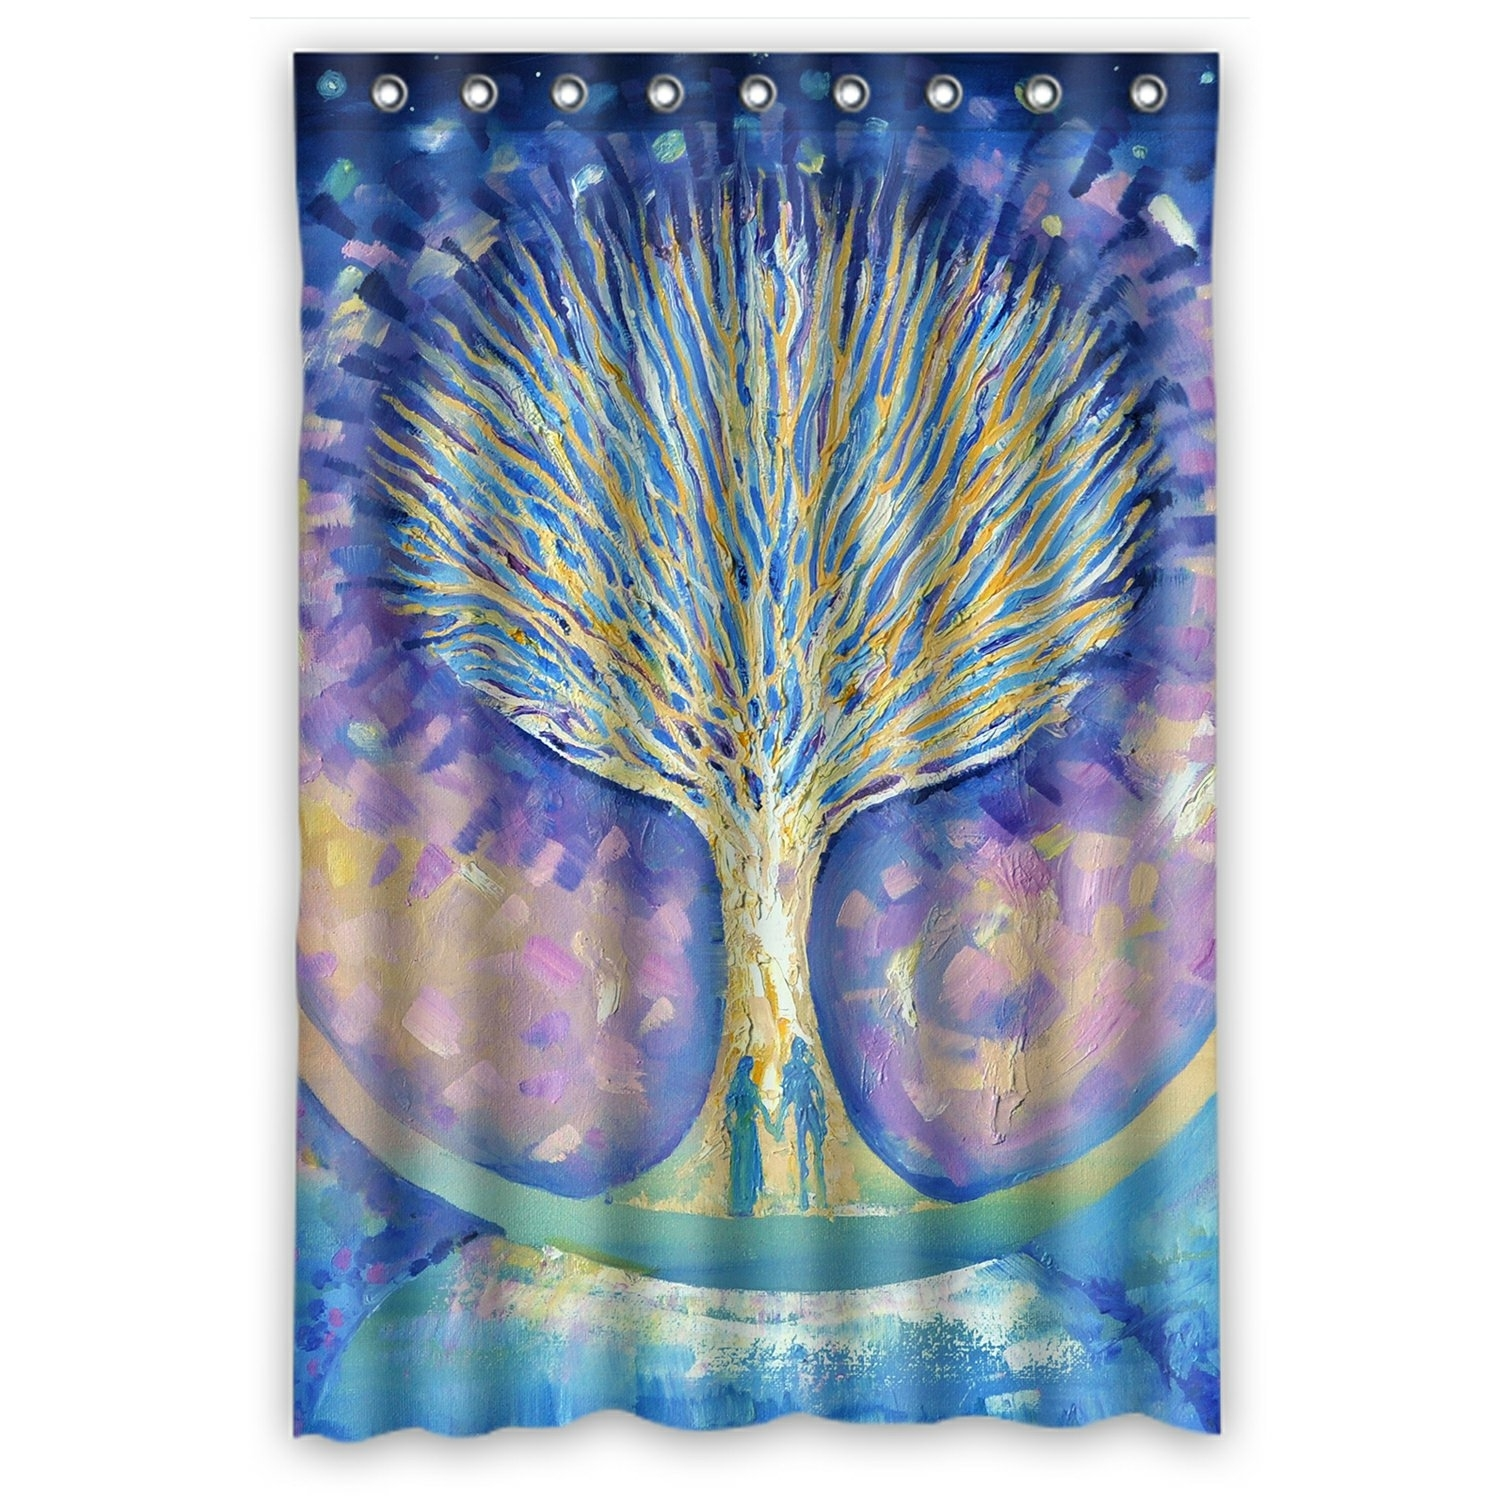 Abstract Shower Curtain, Love Couple on the Moon looking the Tree of Life Shower Curtain 48x72 inch